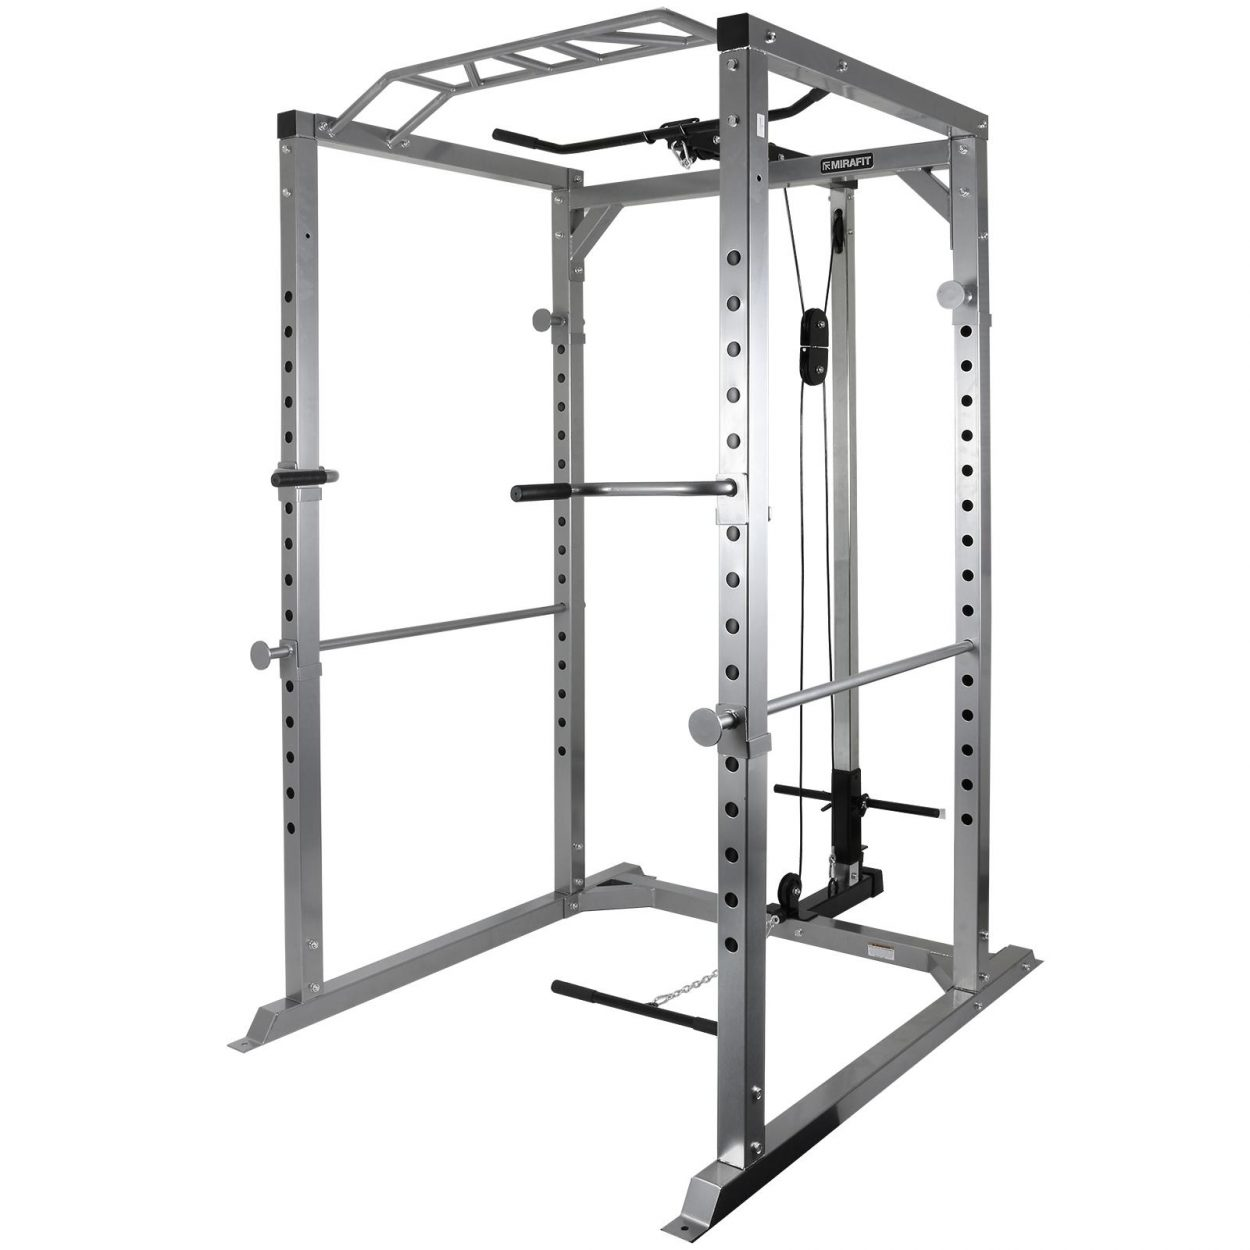 Mirafit M2 350kg Power Rack with Cable System – Silver